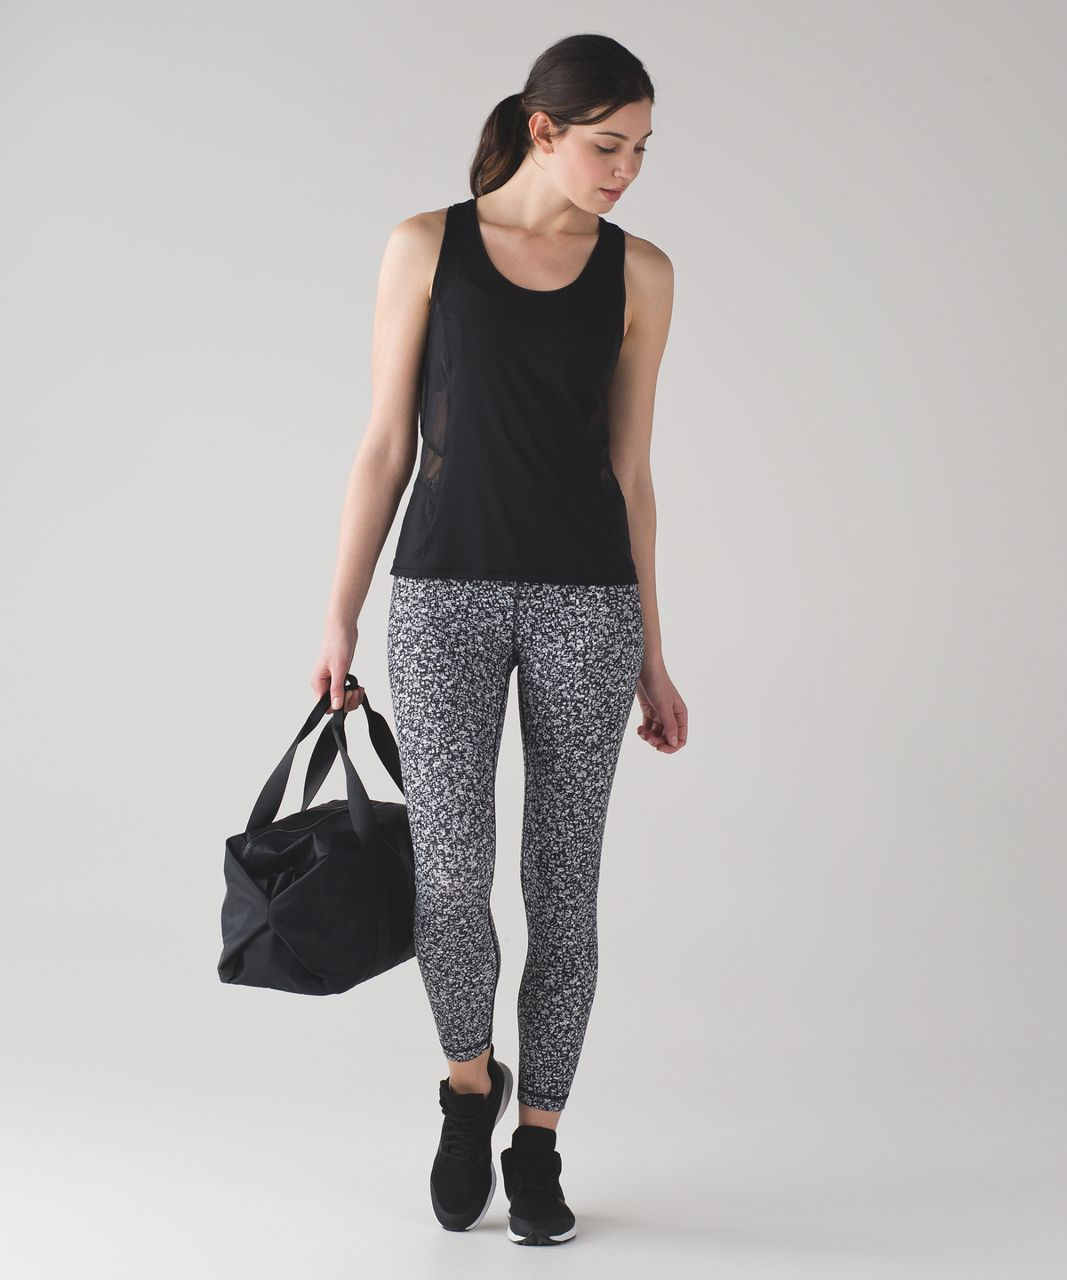 Lululemon Wunder Under Hi-Rise 7/8 Tight (Full-On Luxtreme) - Daisy Dust Alpine White Black